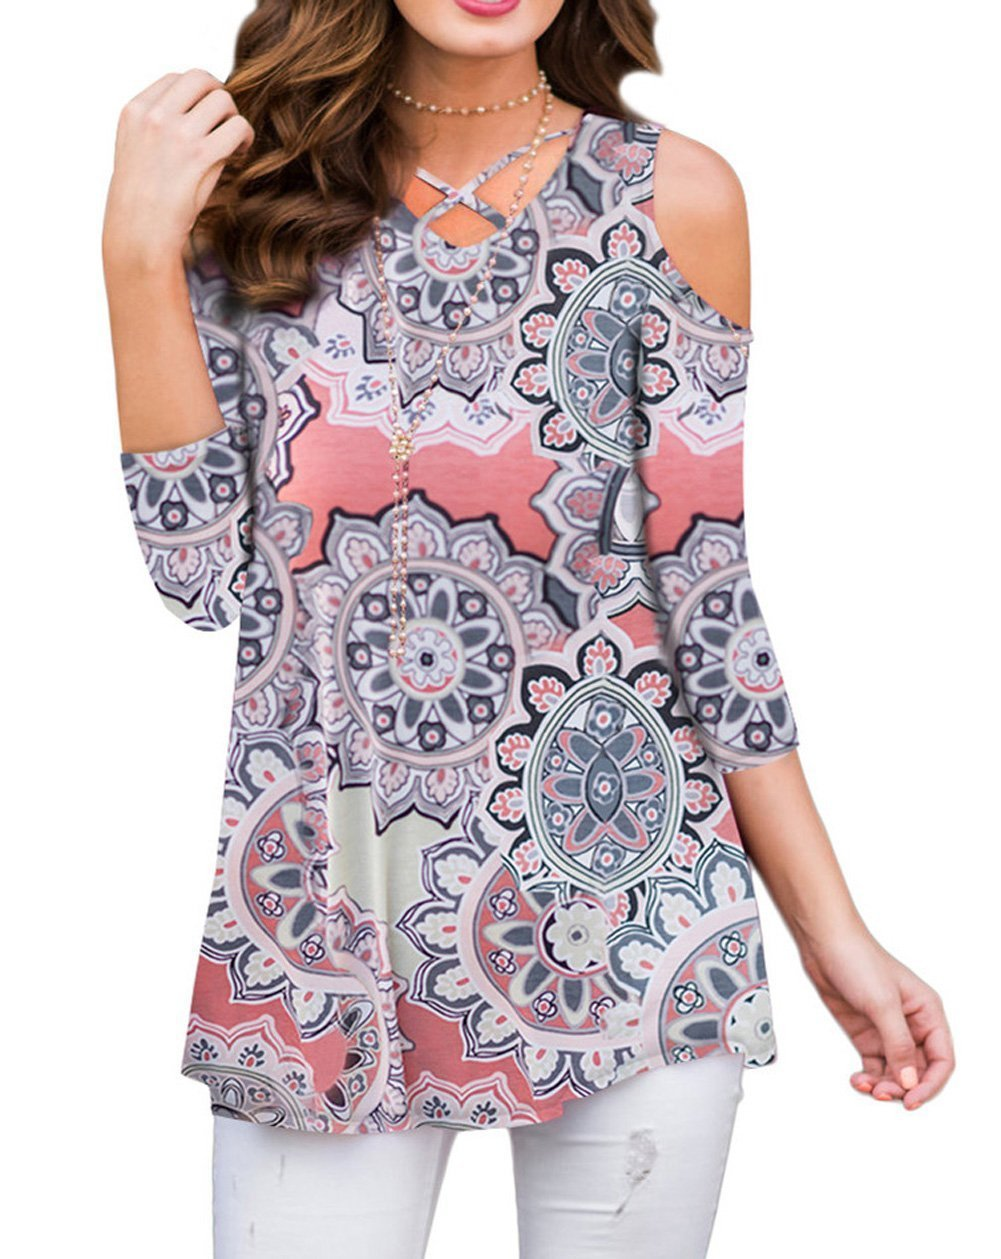 ZZER Women Casual 3/4 Sleeve Floral Print Cold Shoulder Tunic Tops V-Neck Criss Cross T-Shirts Blouses(3/4CoralPeach,L)